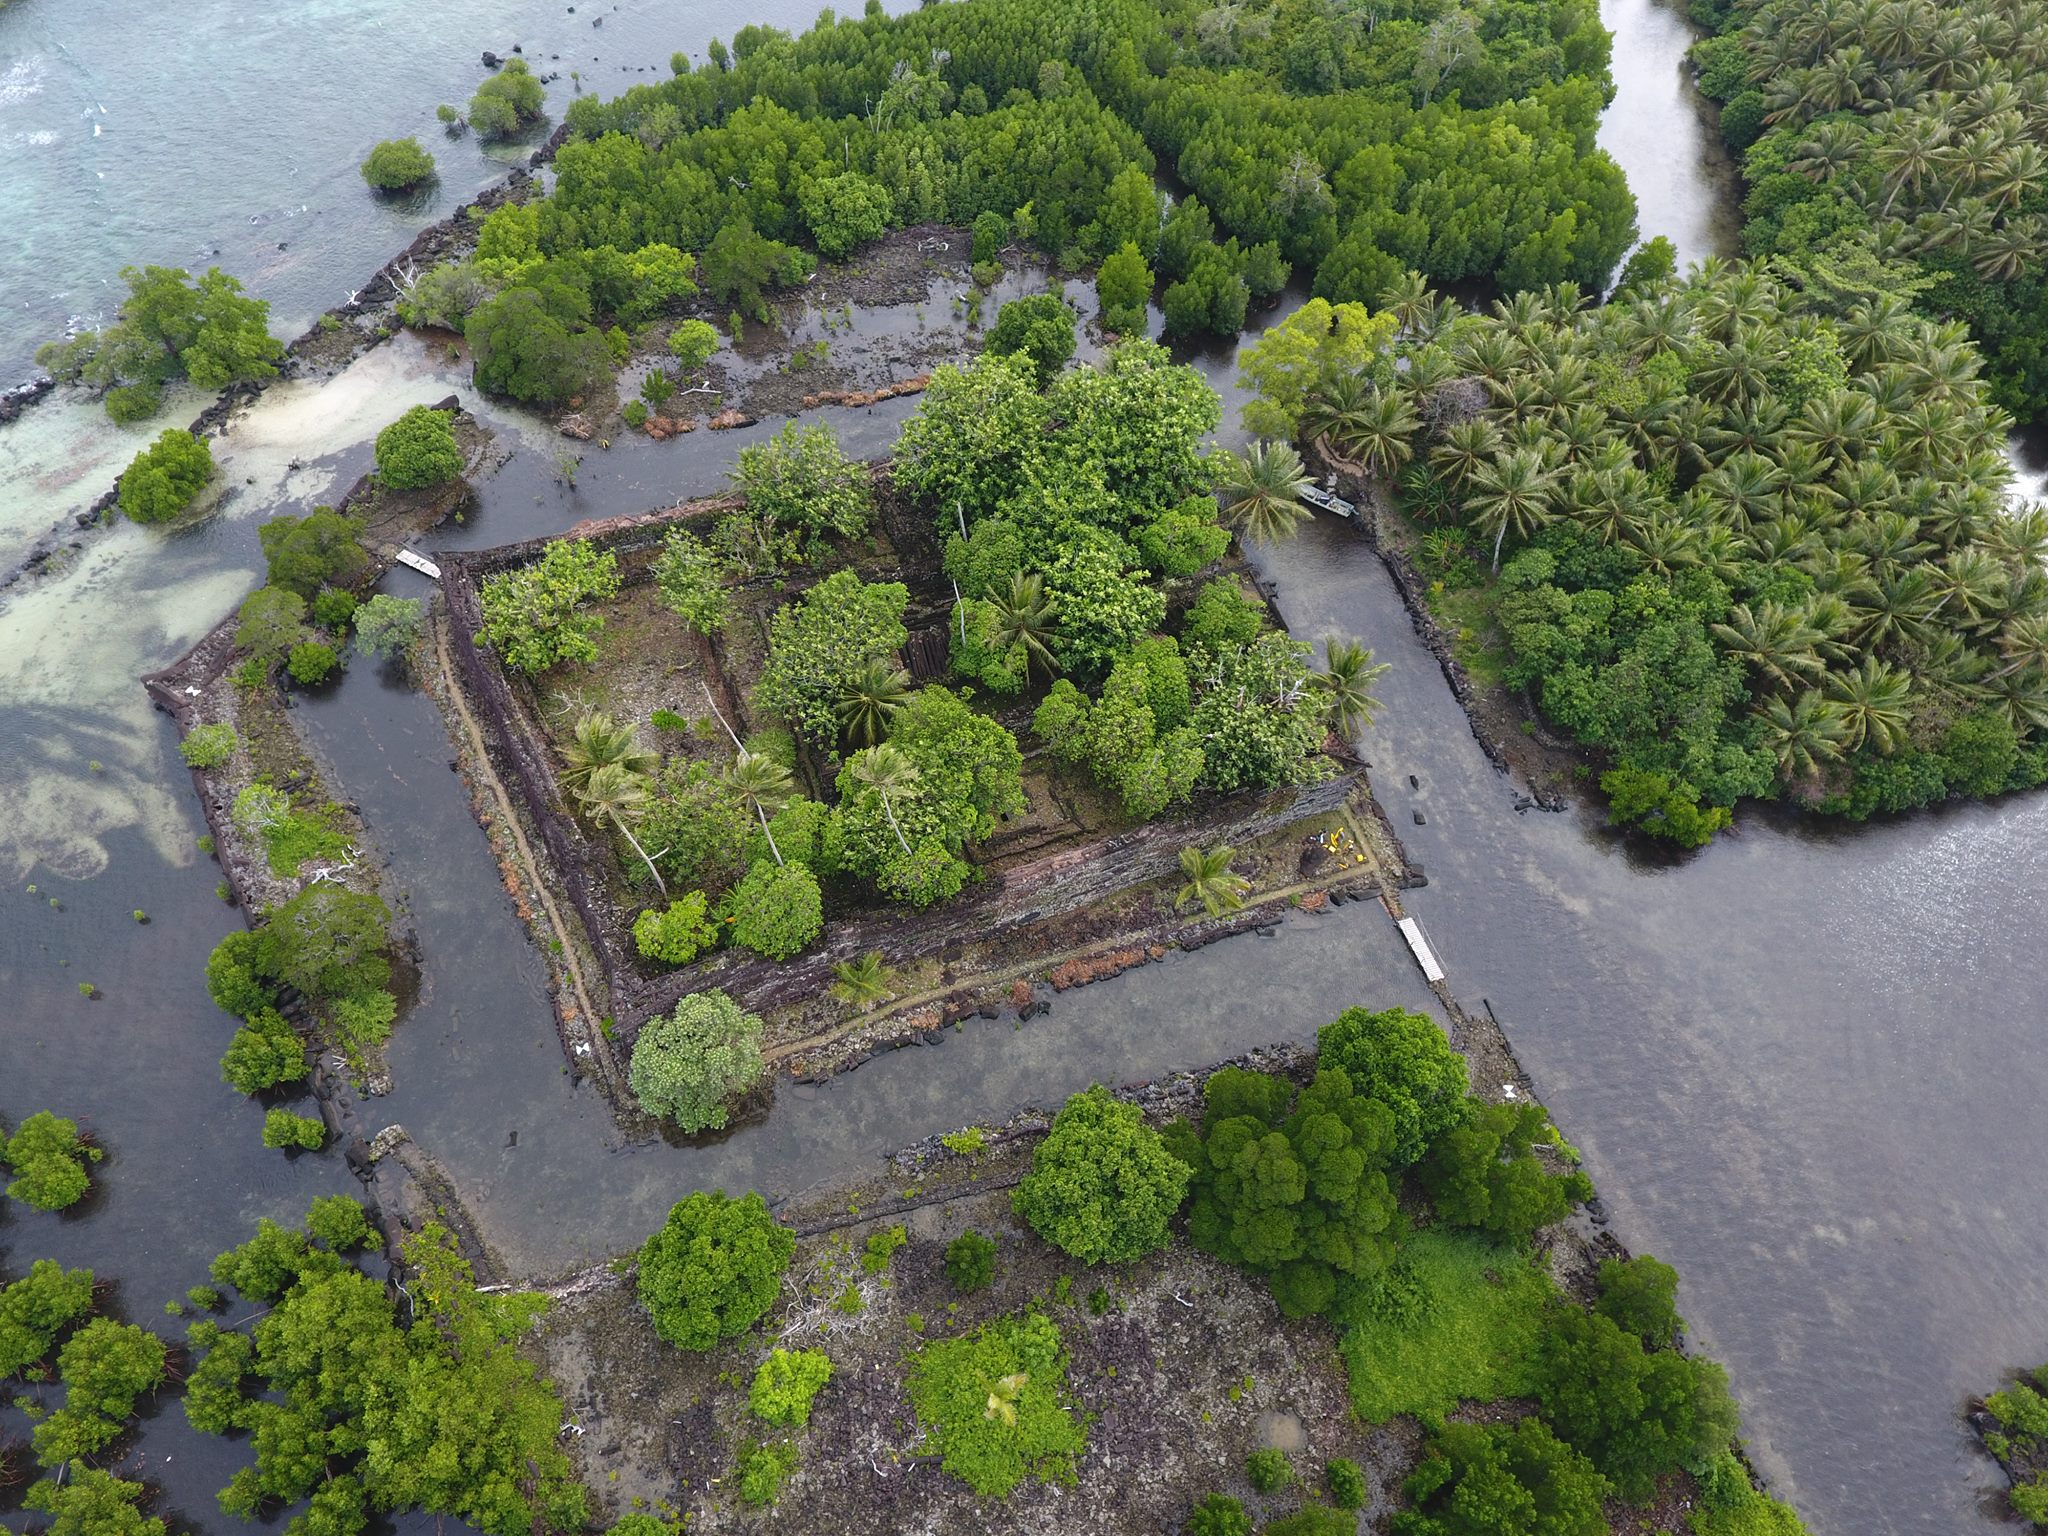 An aerial image, taken from a drone, of Nan Dowas, perhaps the most iconic of Nan Madol's approximately 100 human-made islets.